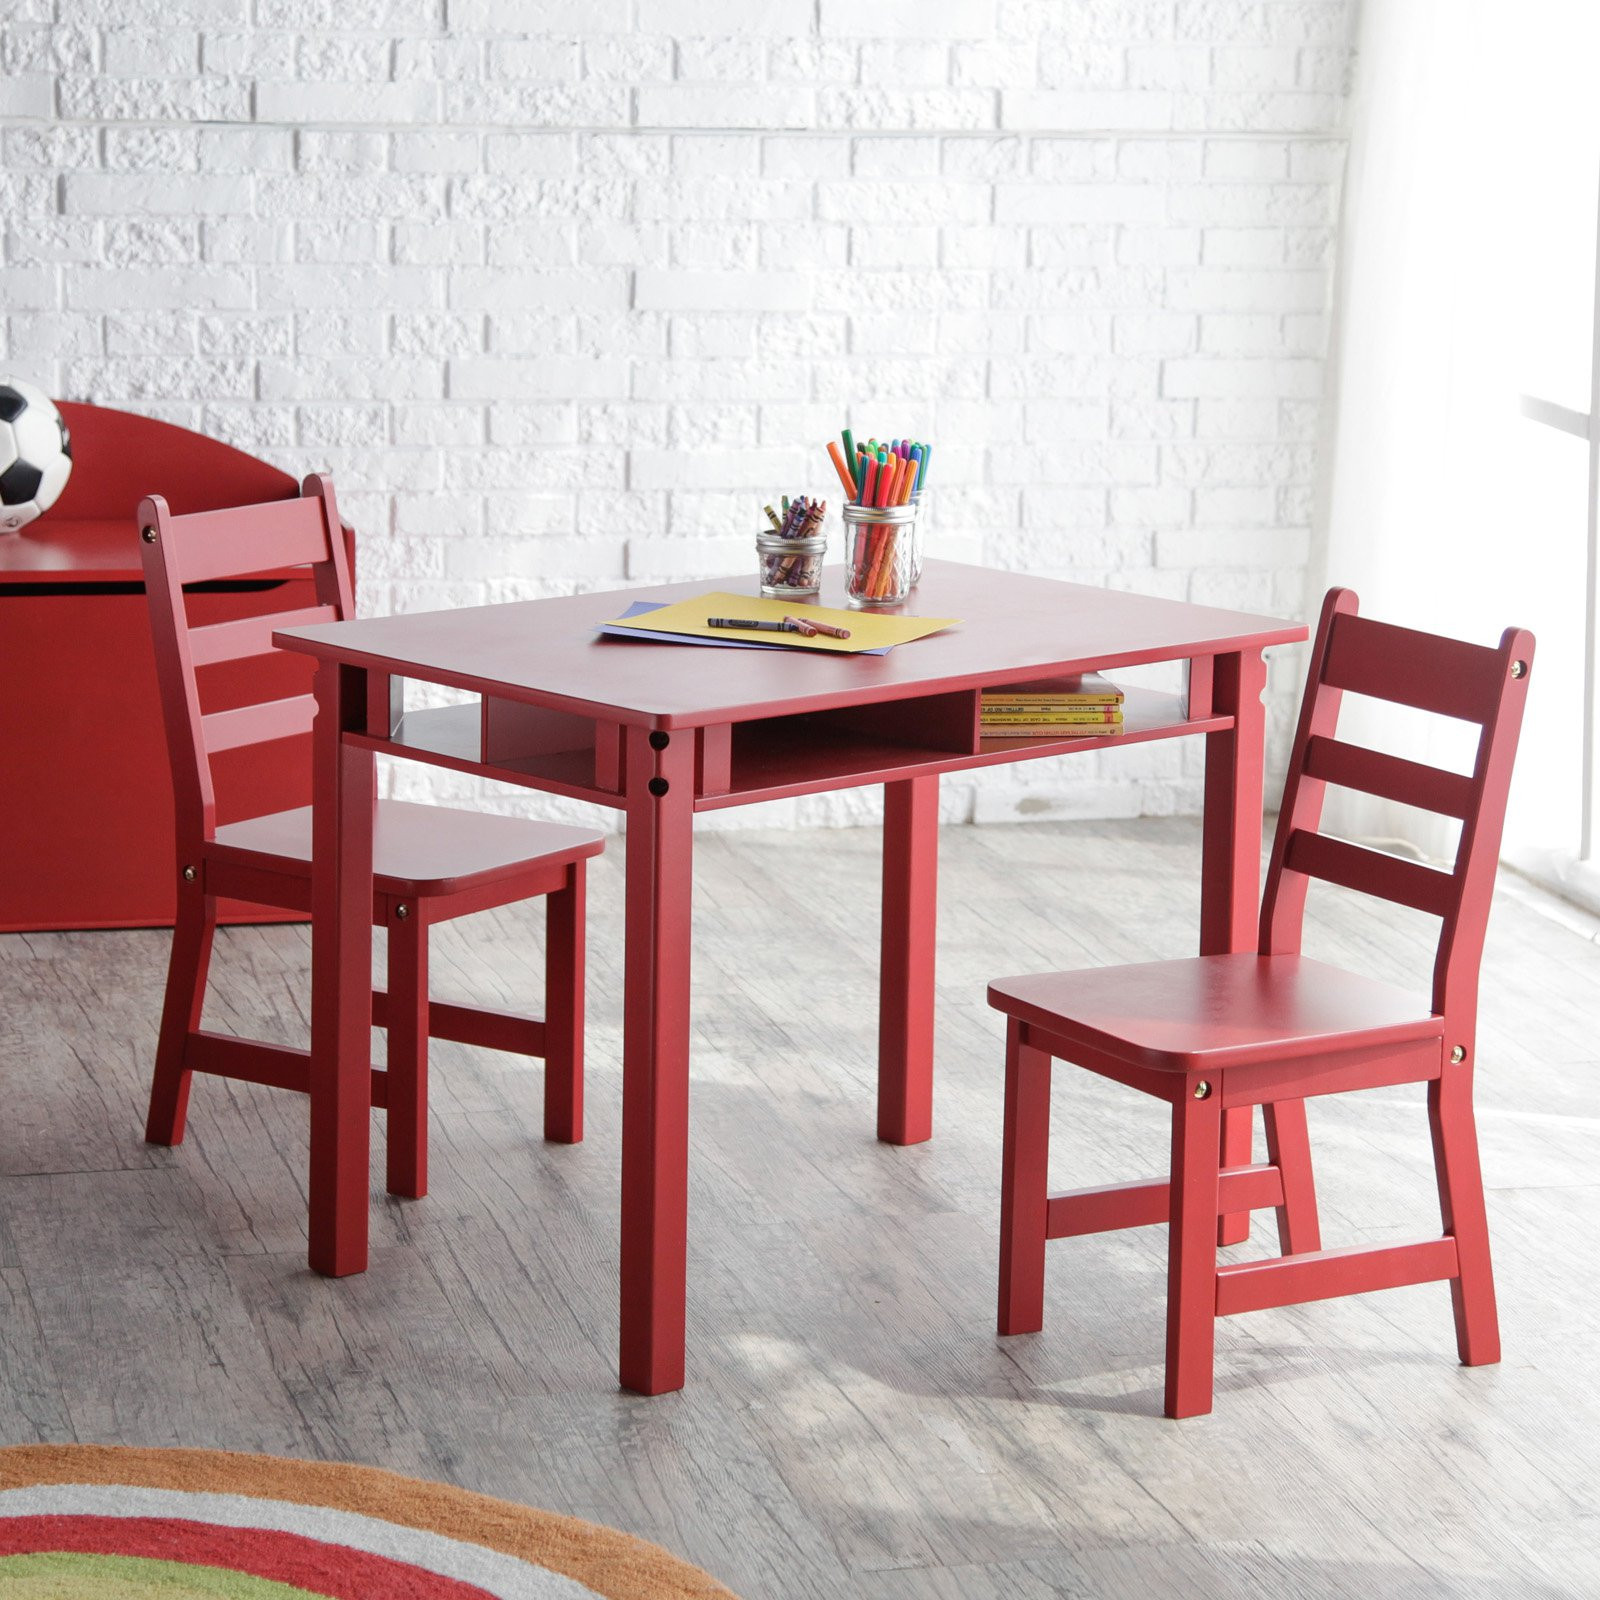 Best ideas about Table And Chair Set . Save or Pin Kids Table And Chairs Sets Now.